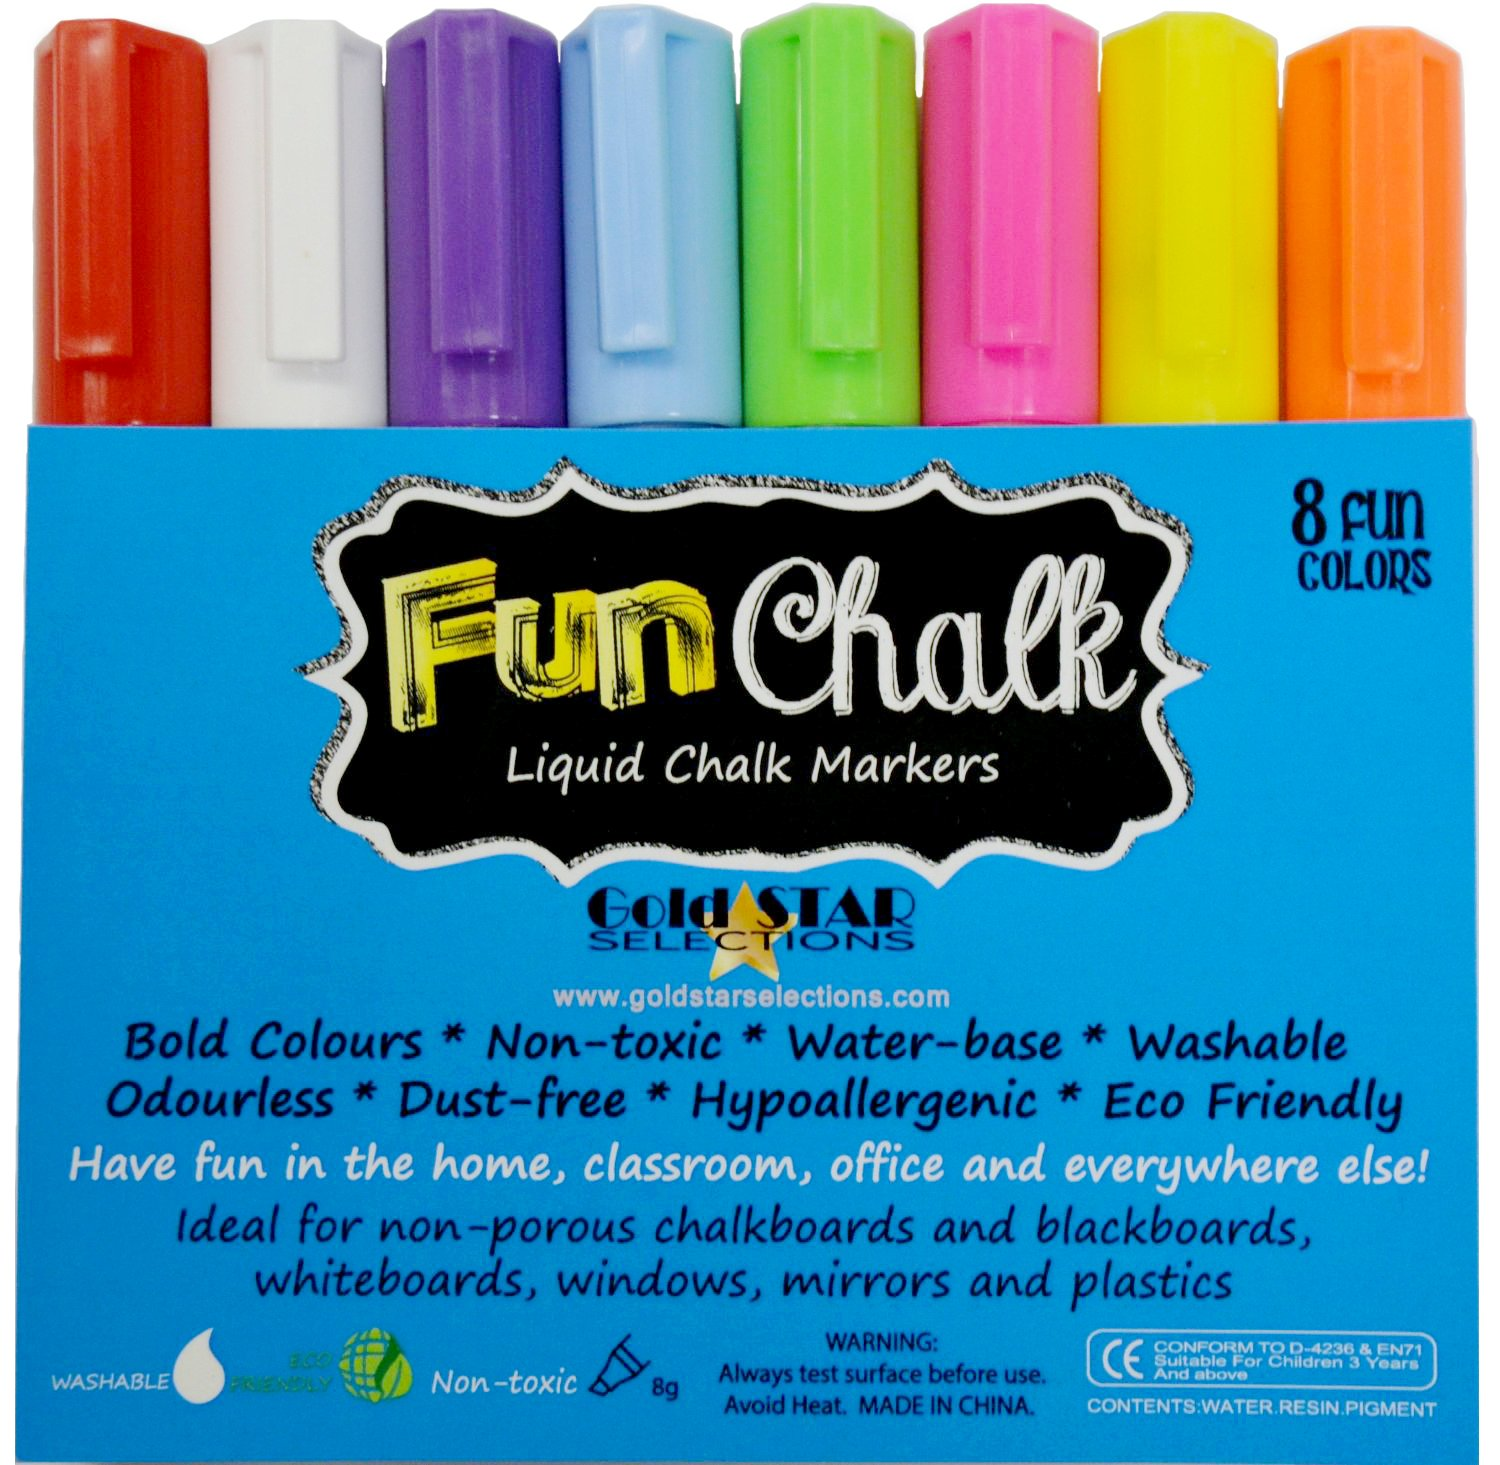 Chalk Markers with Reversible Tip - Ideal for Blackboards, Windows, Non-porous Chalkboards, Whiteboards, Plastics, Bistro Boards, Mirrors, Teachers, Kids, Arts and Crafts, Office and More - Odor Free, Non-toxic Neon Liquid Chalk Pens - Bold Colors & White